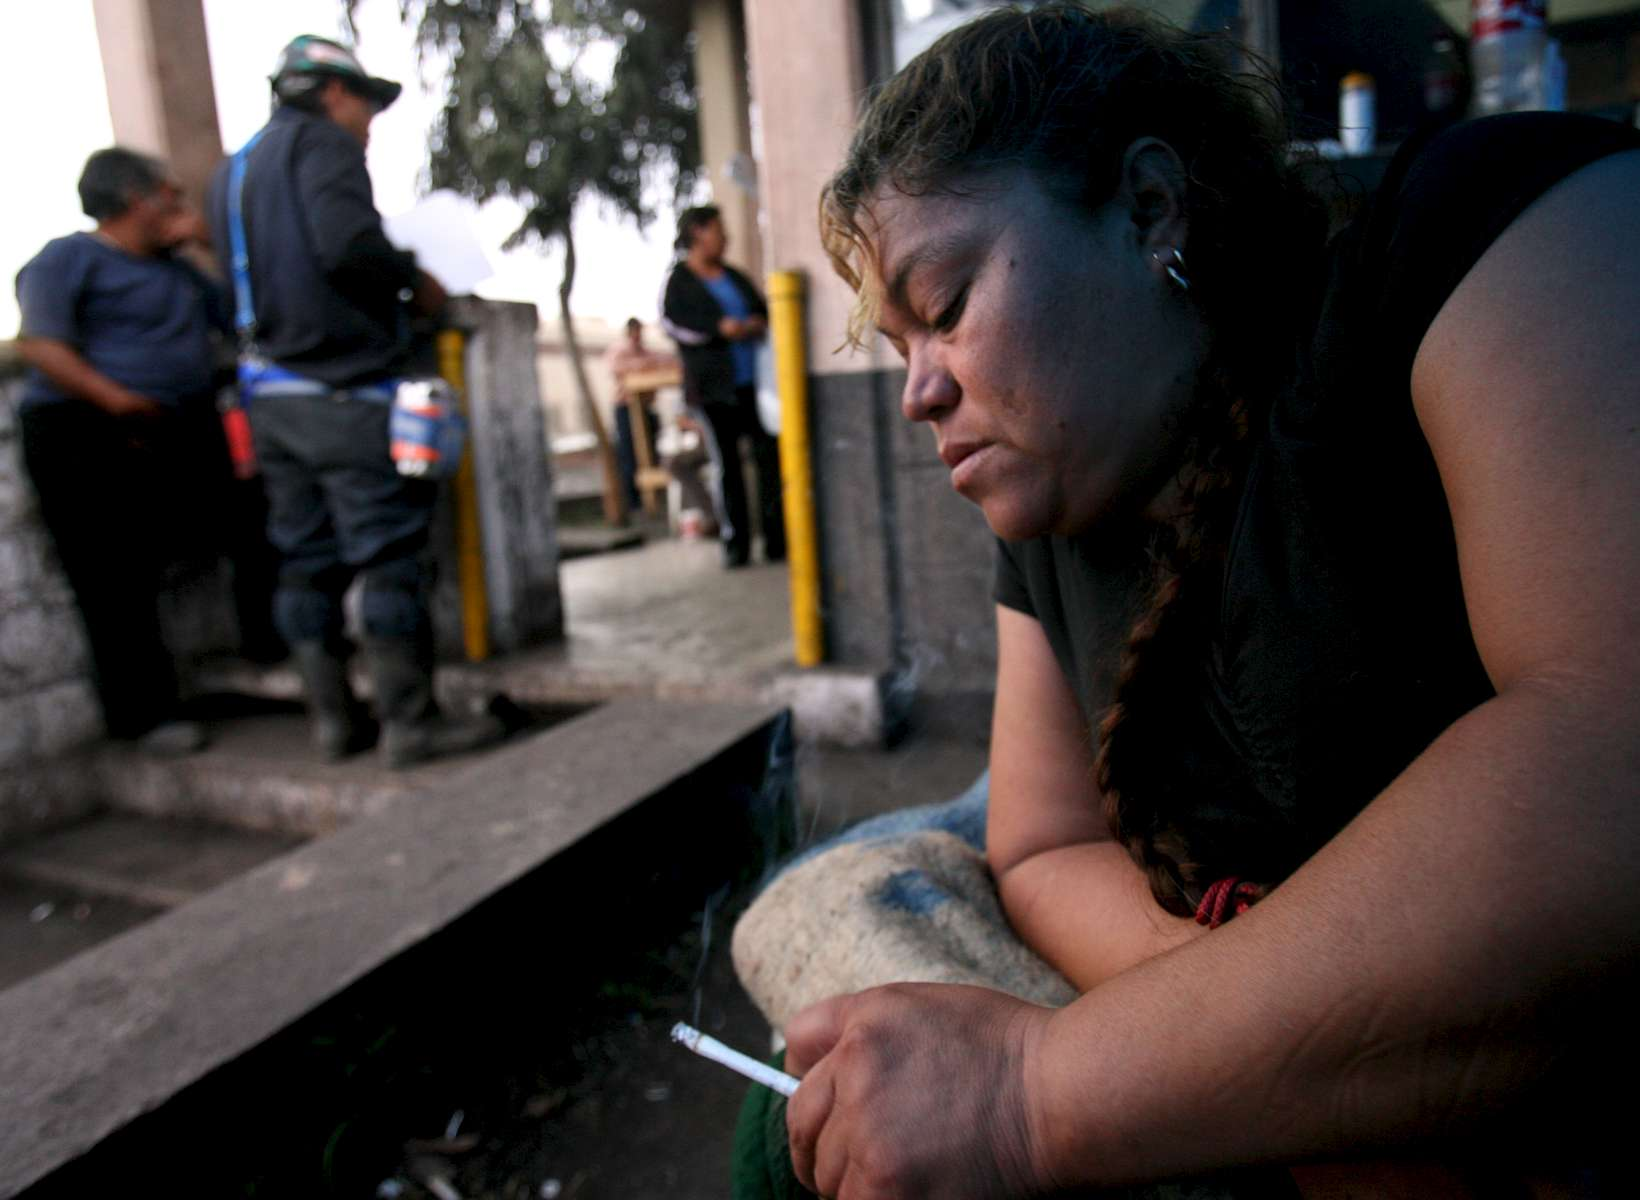 Maria Hernandez rests on her cot at the entrance to the Pasta de Conchos coal mine in San Juan de Sabinas, Mexico Saturday March 18, 2006 where her husband has been trapped since February 19. {quote} He's going to come out that gate and I'm going to be here awaiting him,{quote} said Hernandez. In the Early morning on Sunday February 19, 2006, sixty-five miners were trapped as much as 2000 feet below ground after an explosion.Sharon Steinmann / Houston Chronicle